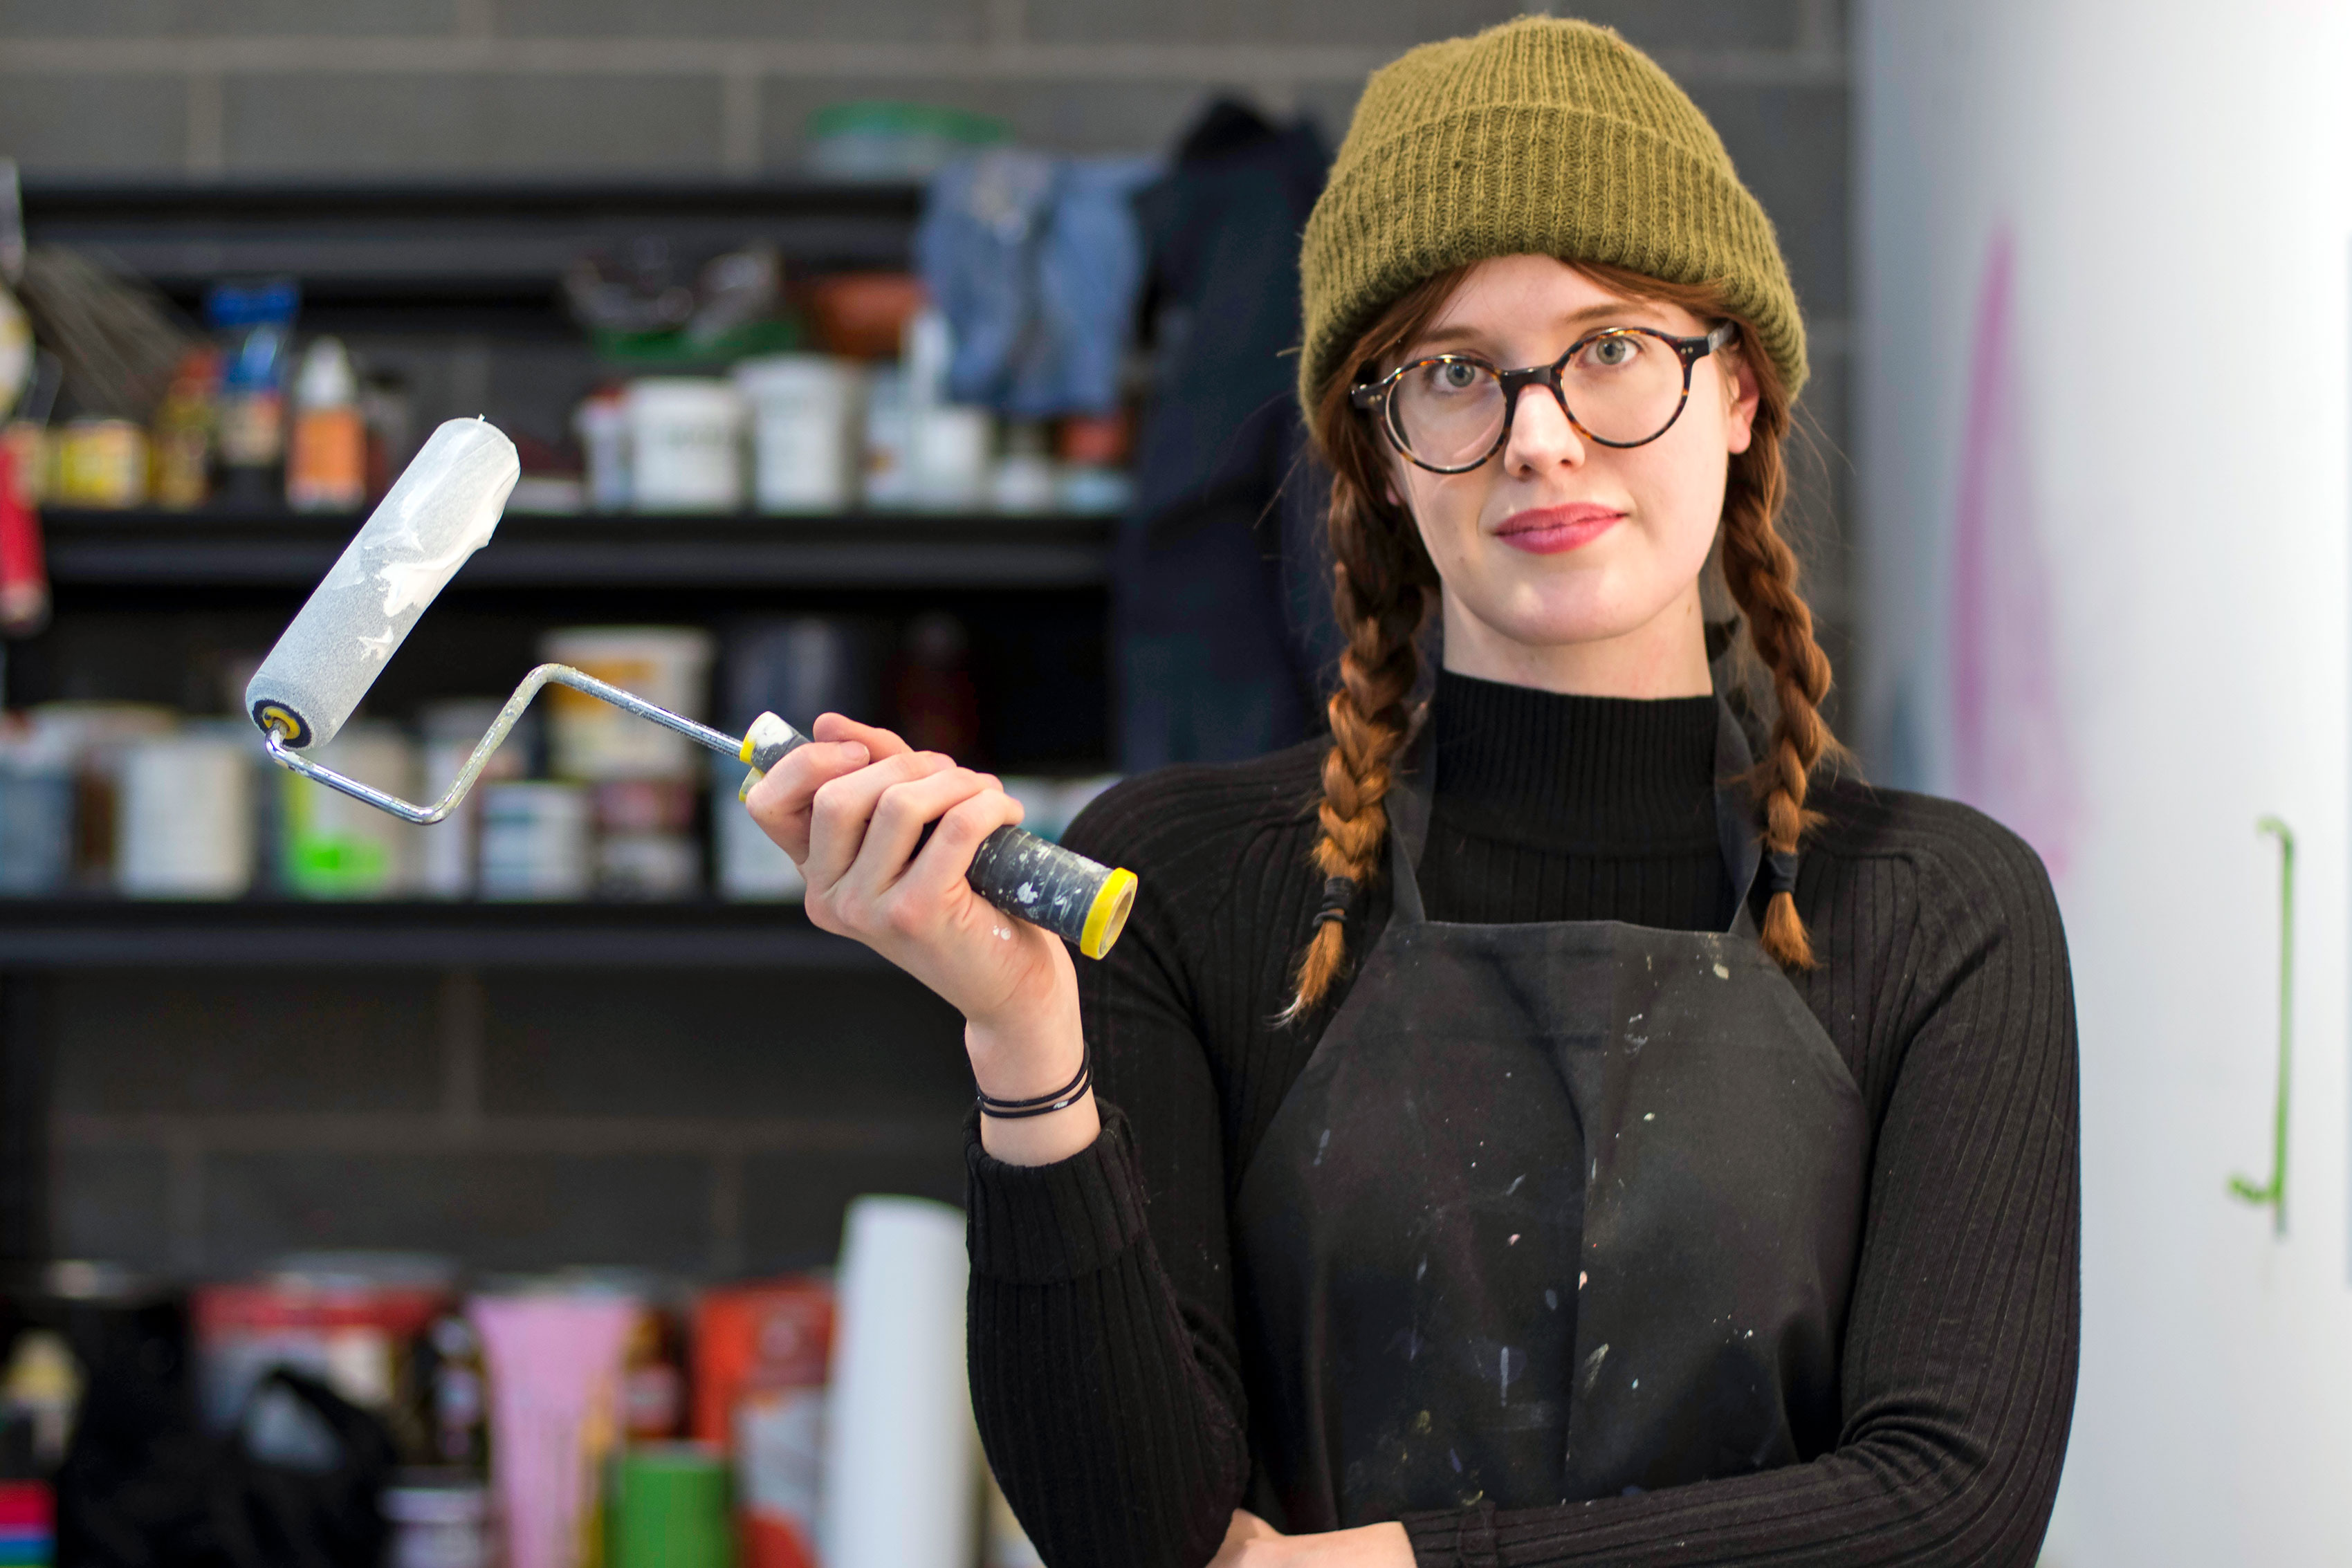 <p>Artist Molly Bounds, who lives at the Juice Church DIY space, paints in her studio at RedLine Contemporary Art Center, in Denver, Colo.</p>